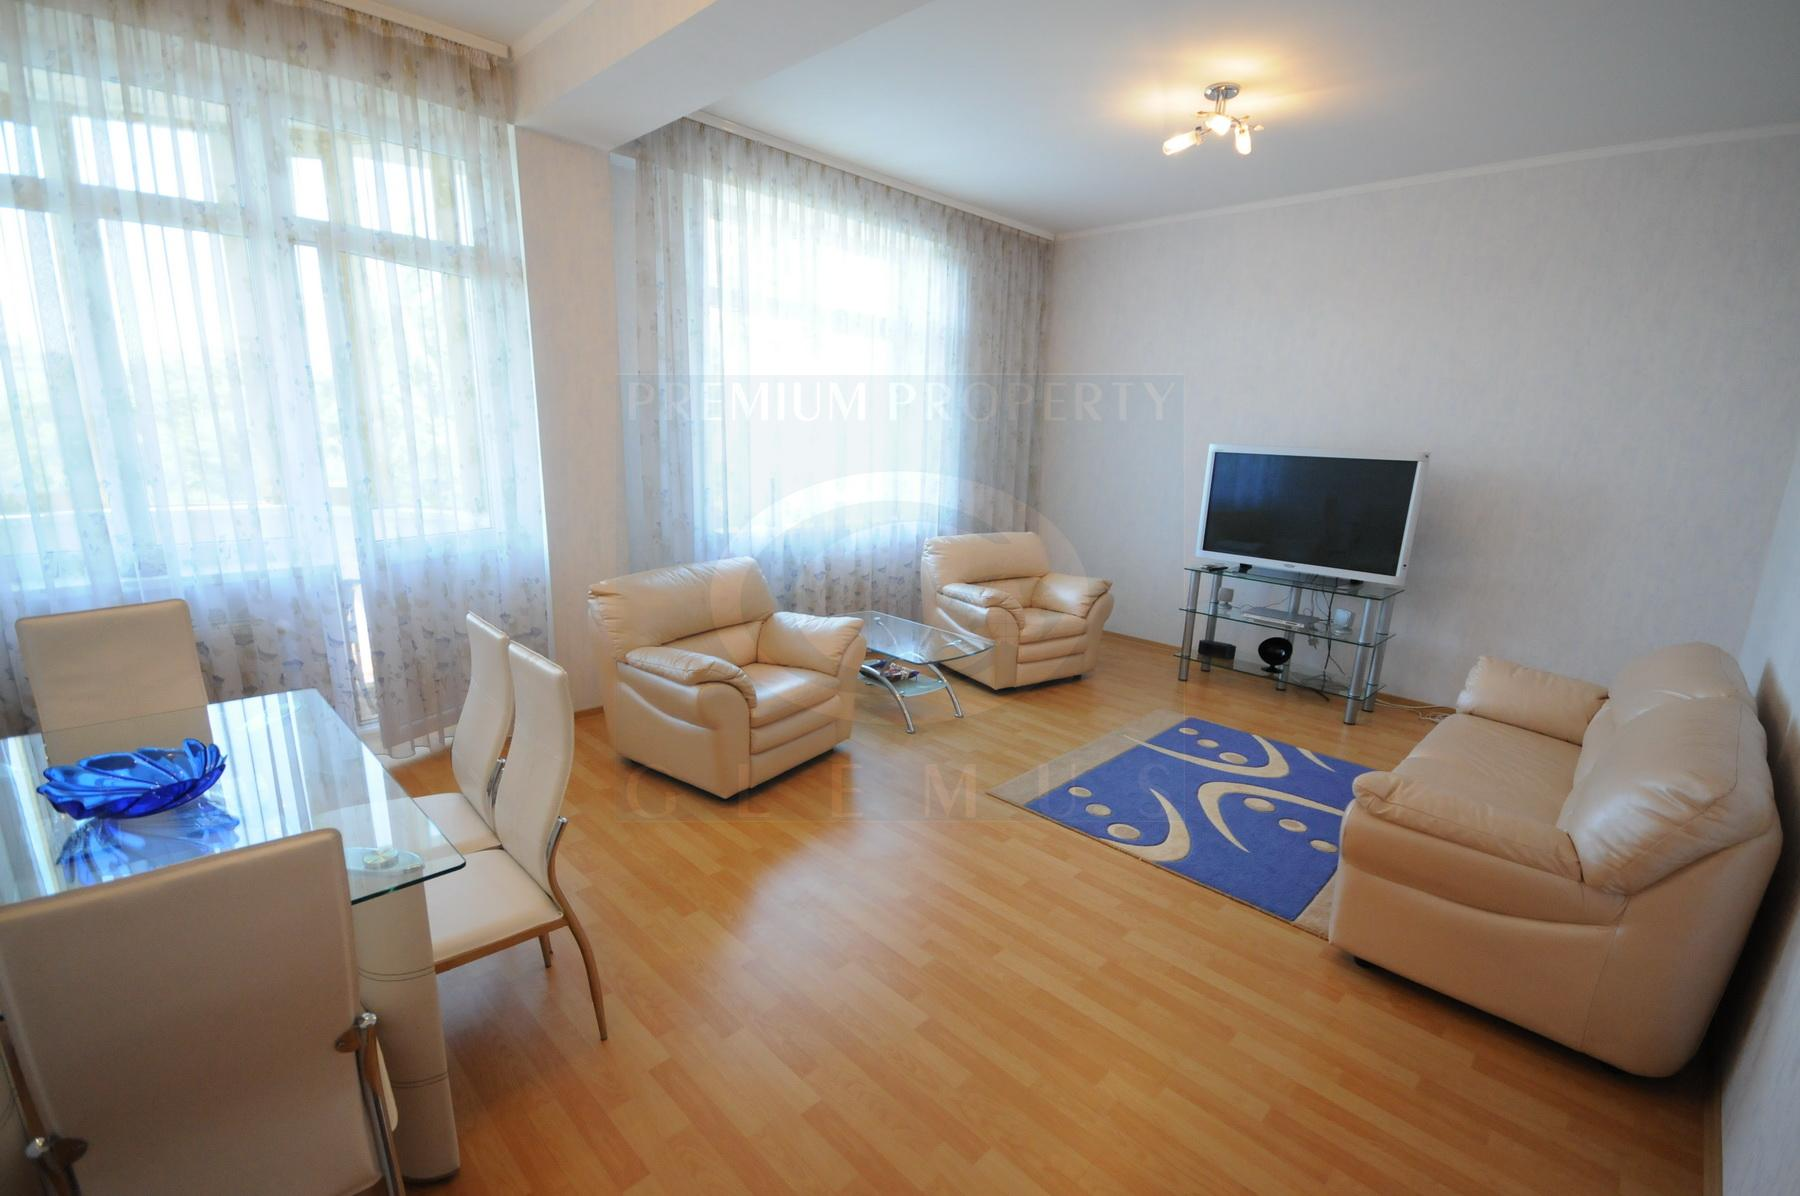 Unfurnished two-bedroom apartment in Lara City